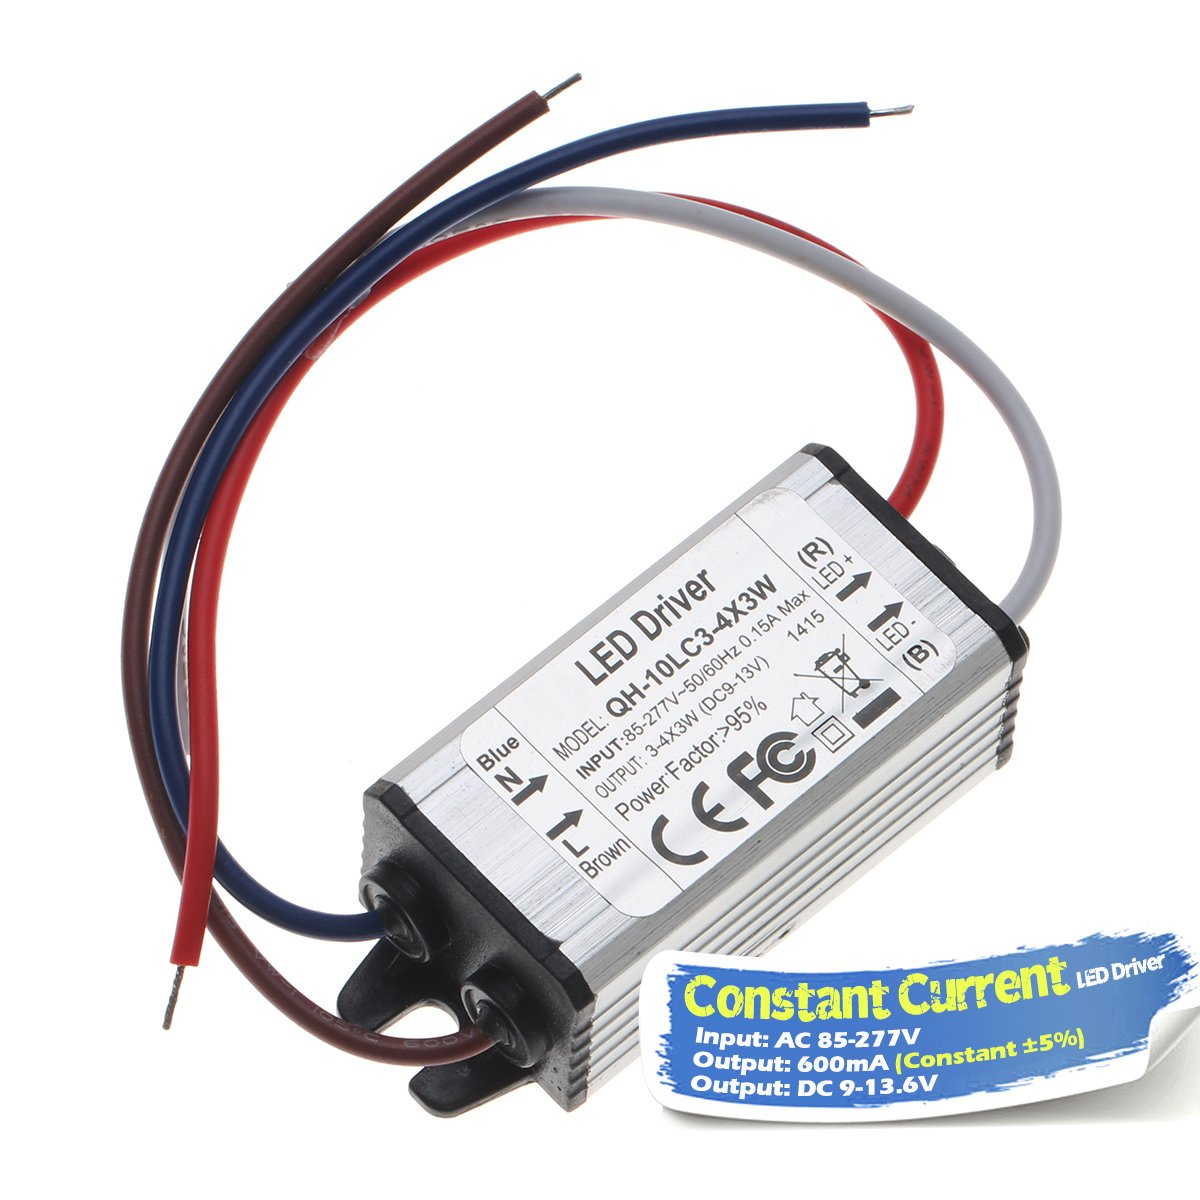 Chanzon Led Driver 600ma Constant Current Output 9v 136v Input Together With 10 Watt Circuit On High 85 277v Ac Dc 3 4x3w 9w 12w Ip67 Waterproof Power Supply 600 Ma Lighting Transformer